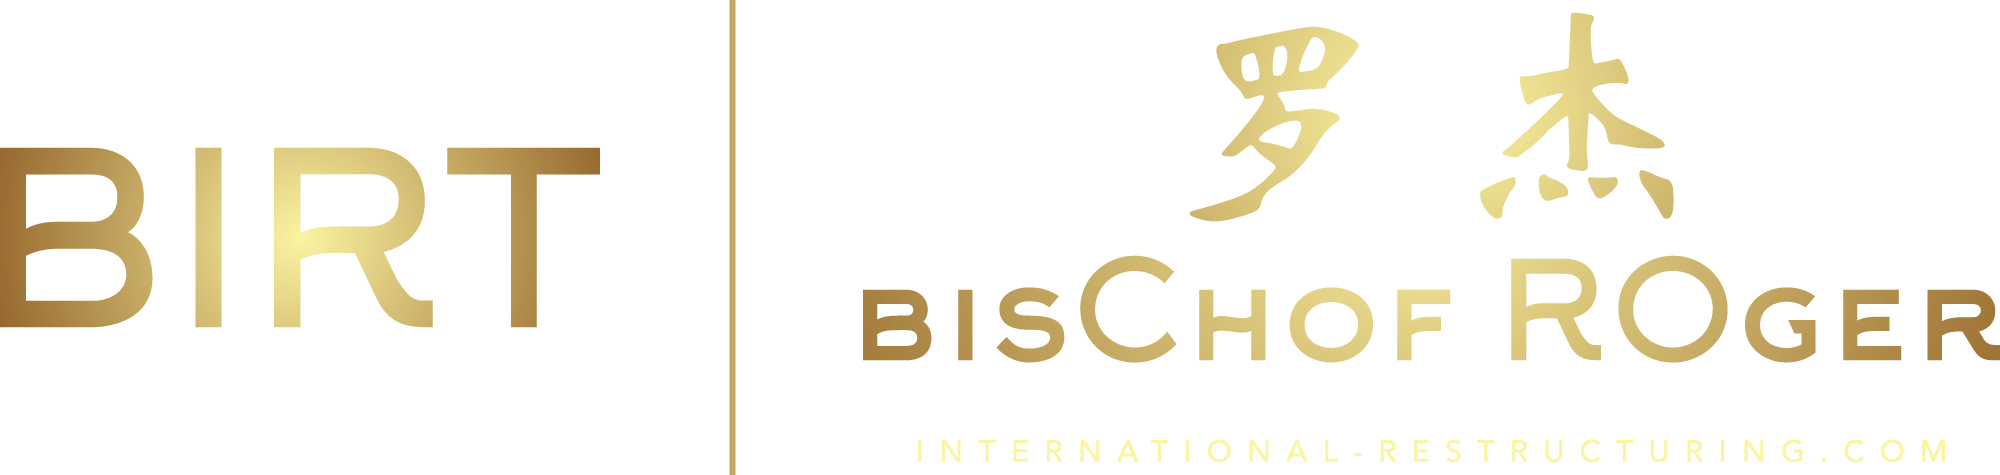 BIRT International Restructuring Logo